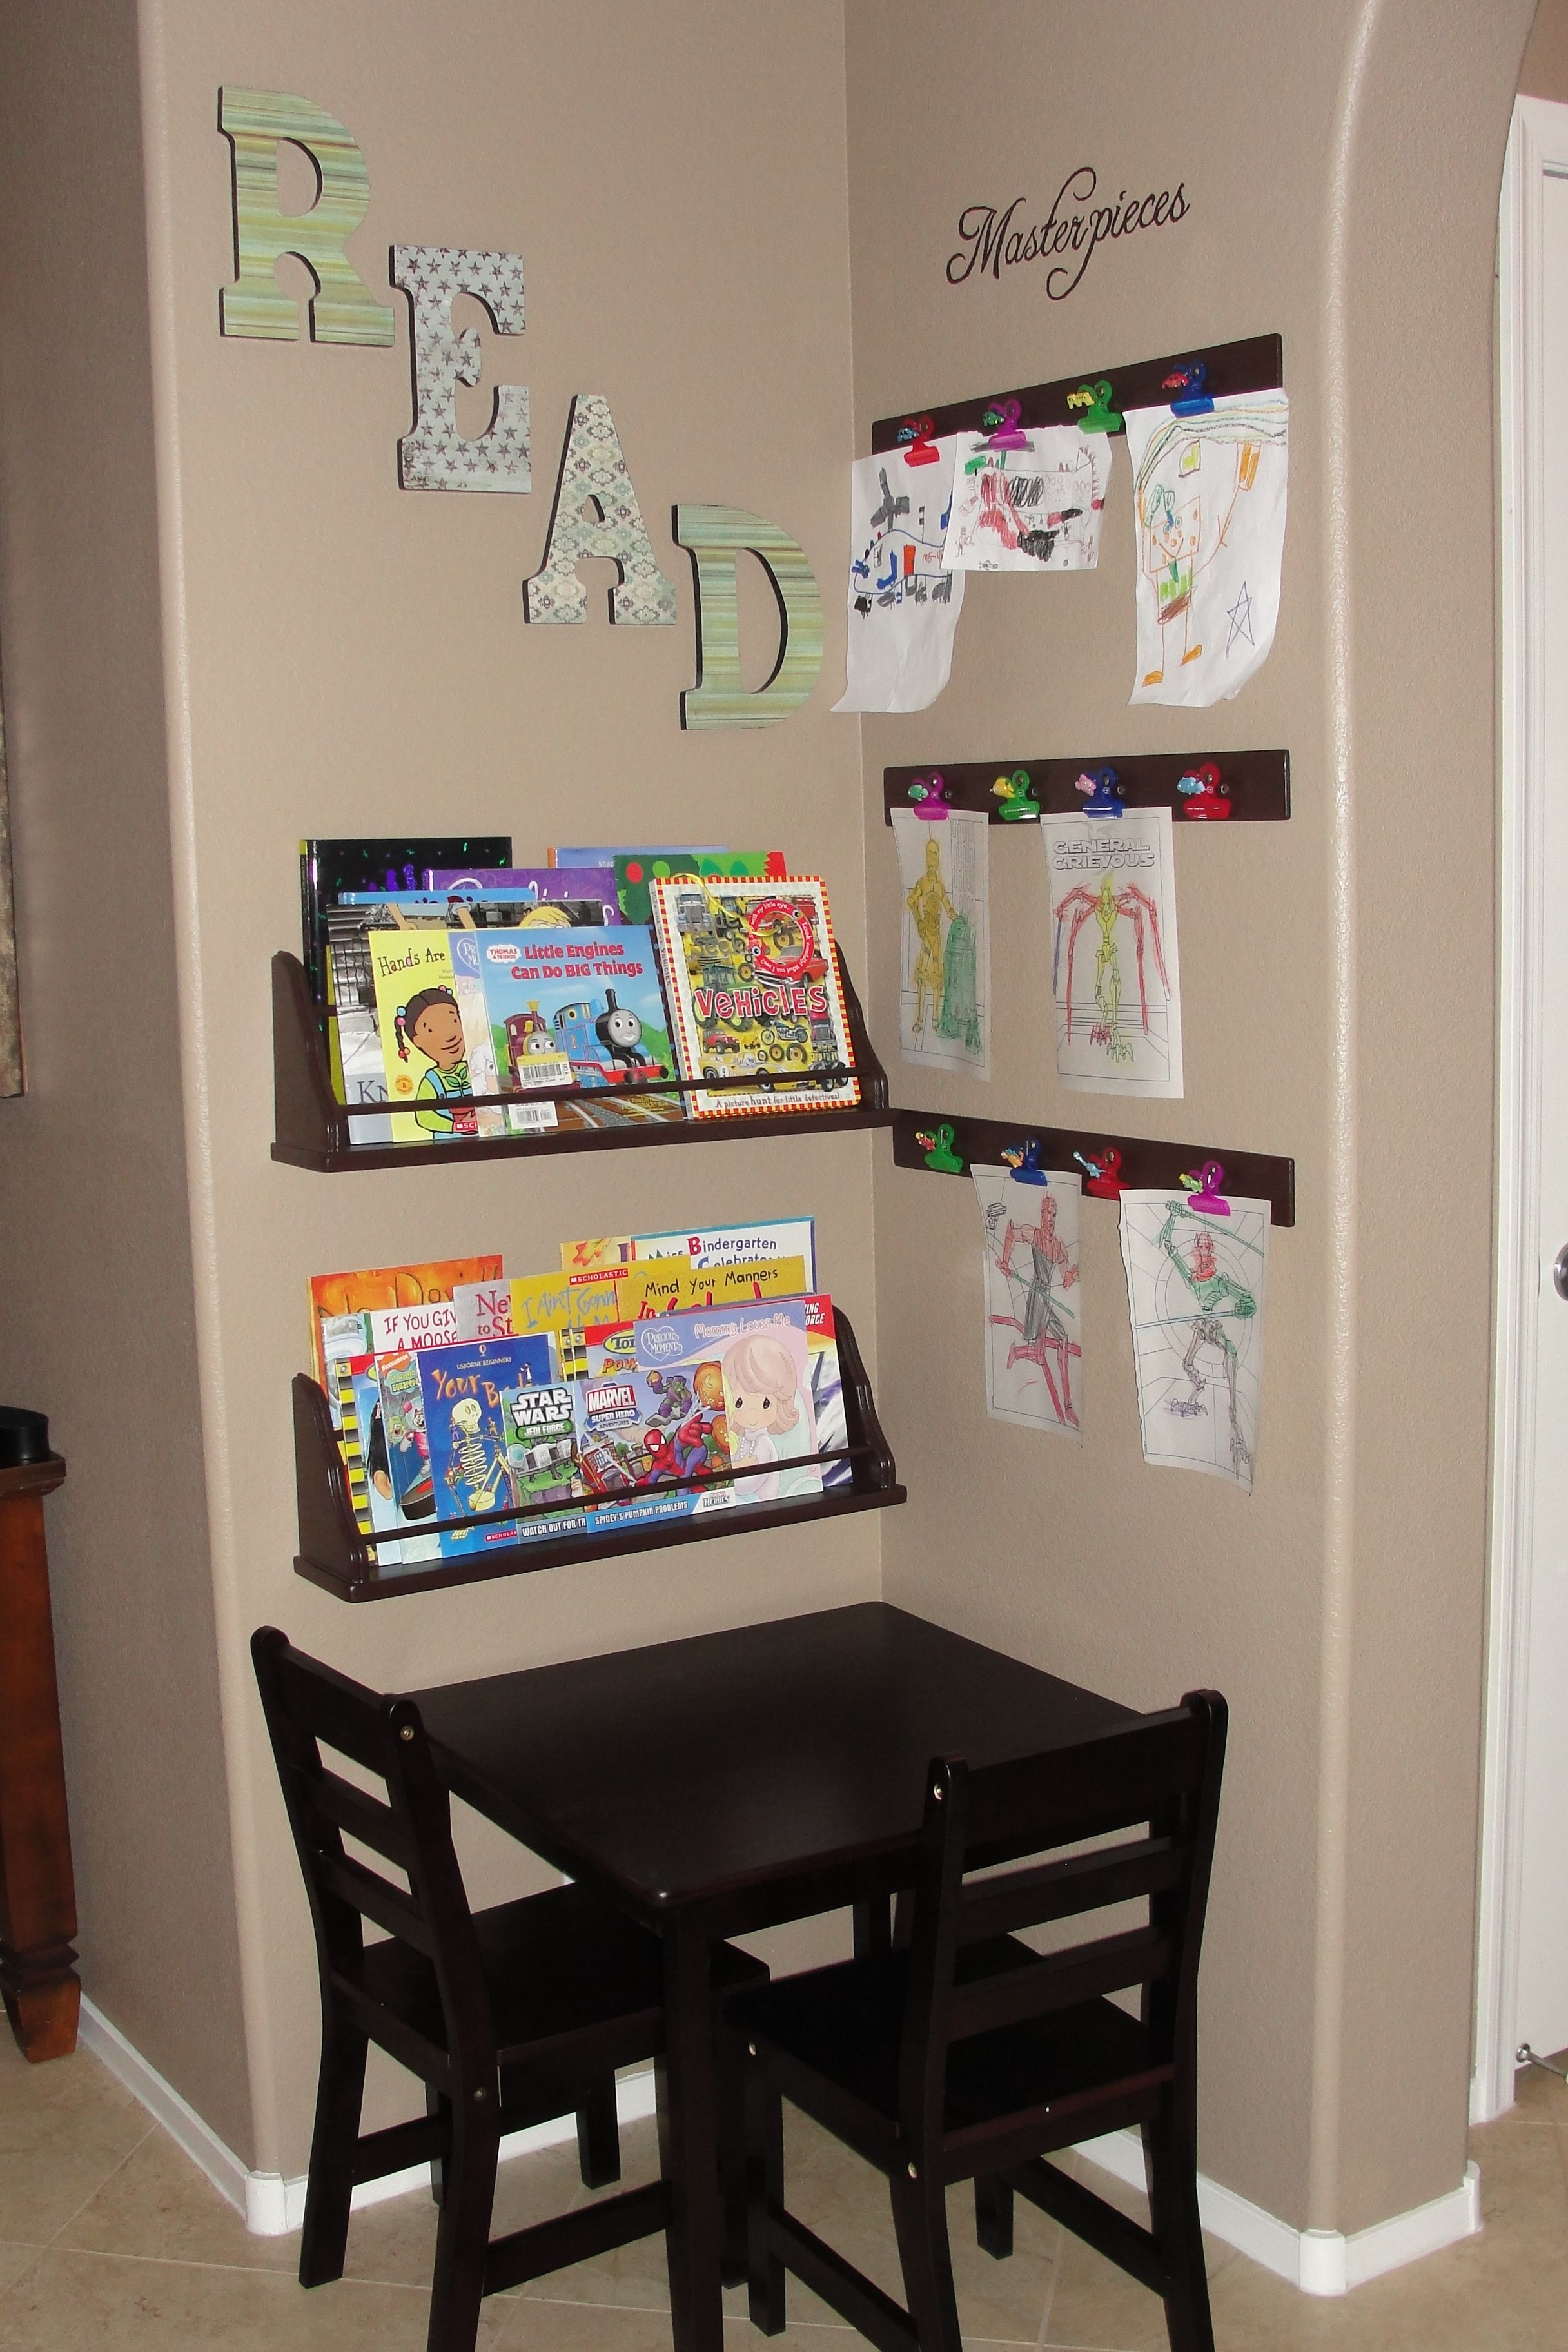 7 1 Toy Storage Ideas 2019 Diy Plans In A Small Space